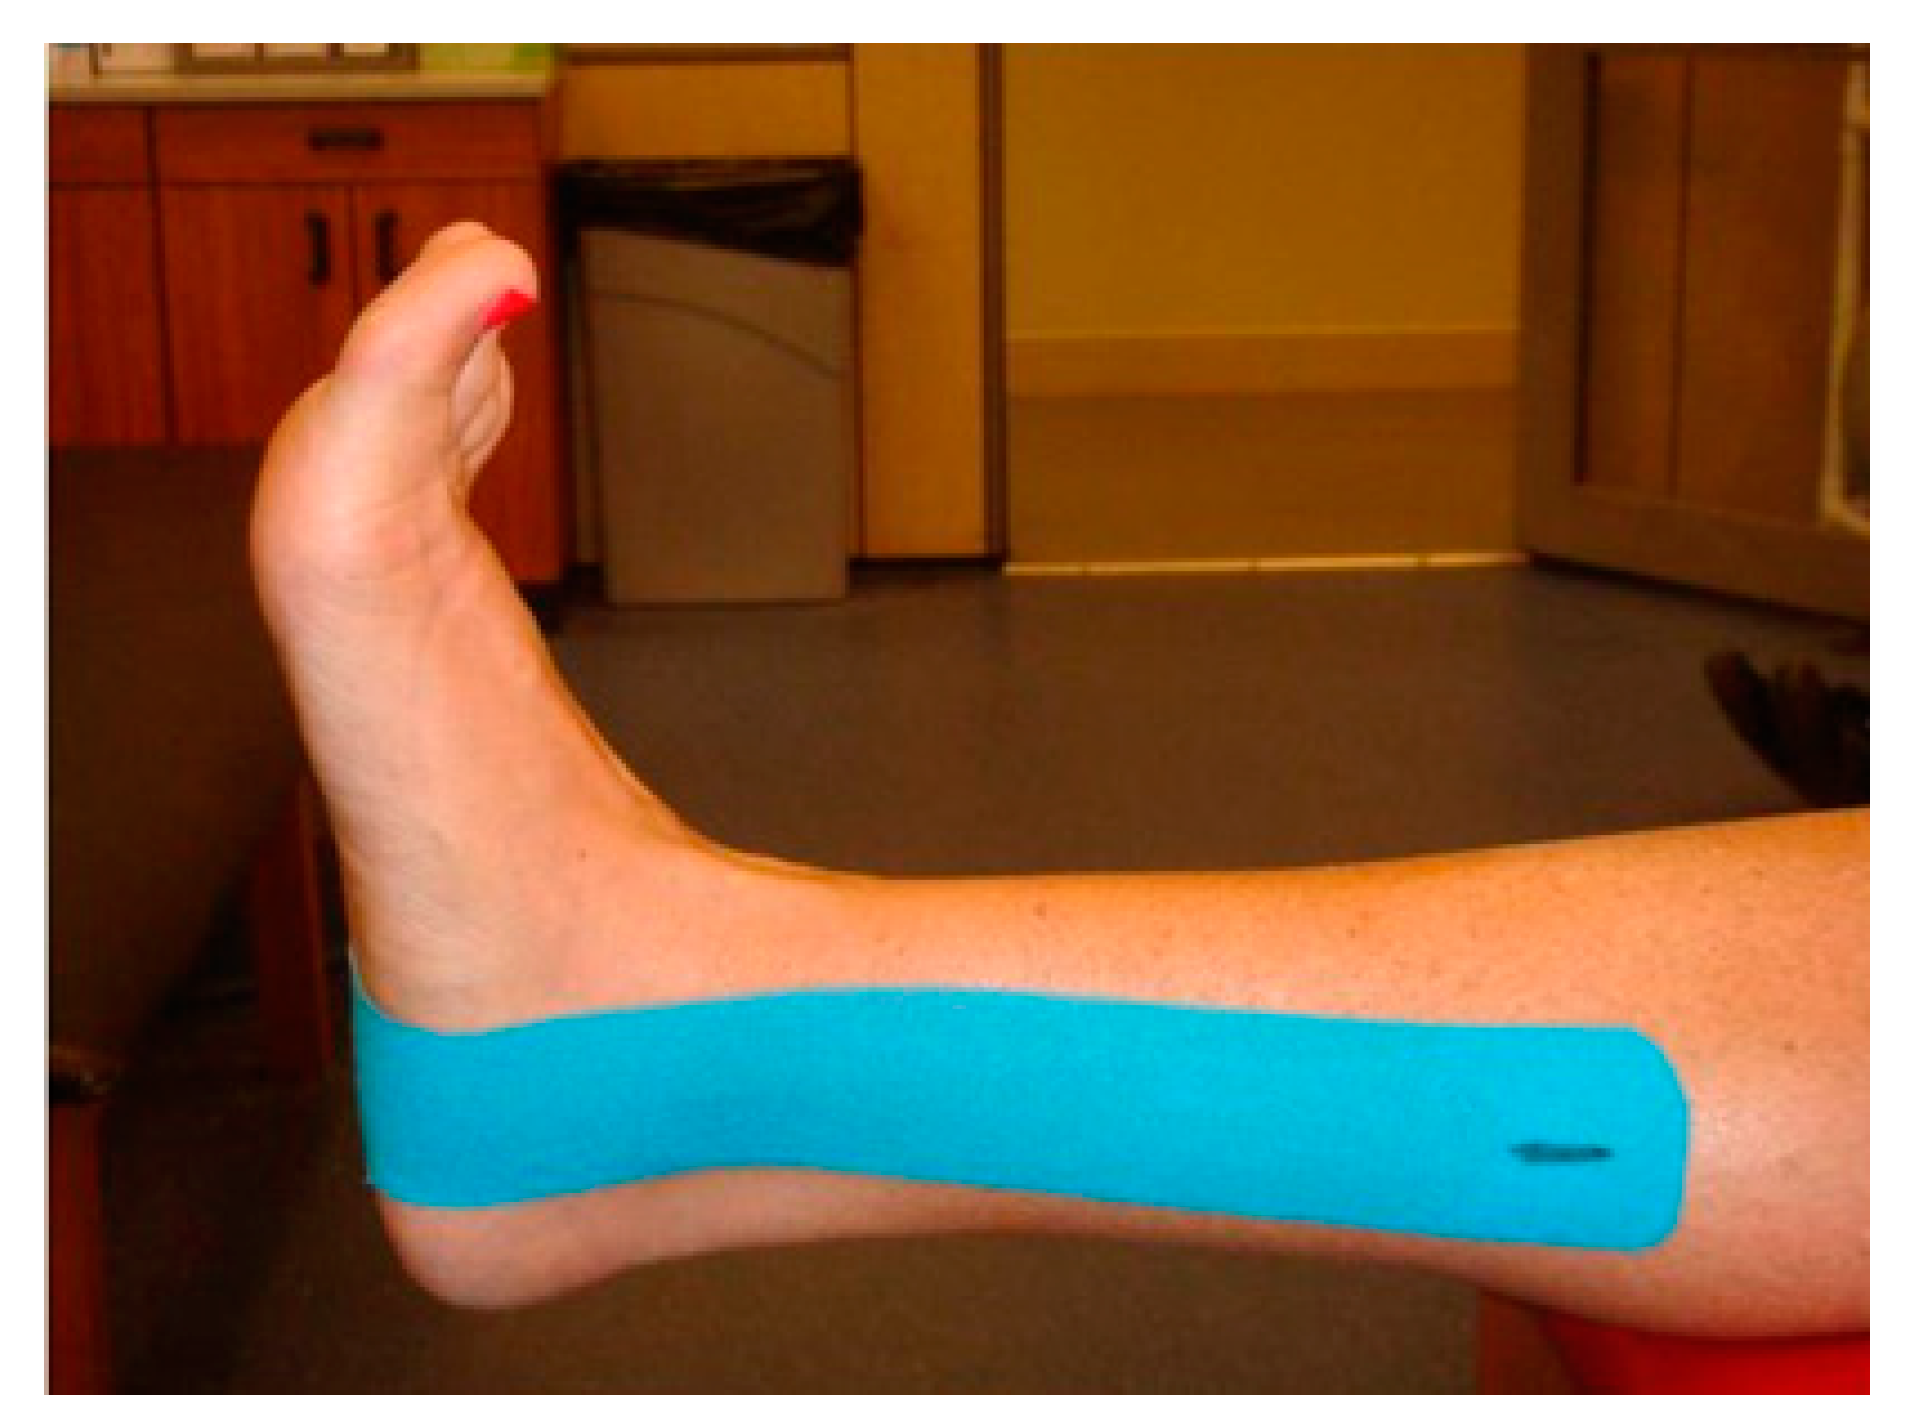 e0e705340cd6c JFMK | Free Full-Text | Effect of Kinesio® Taping on Ankle Complex ...